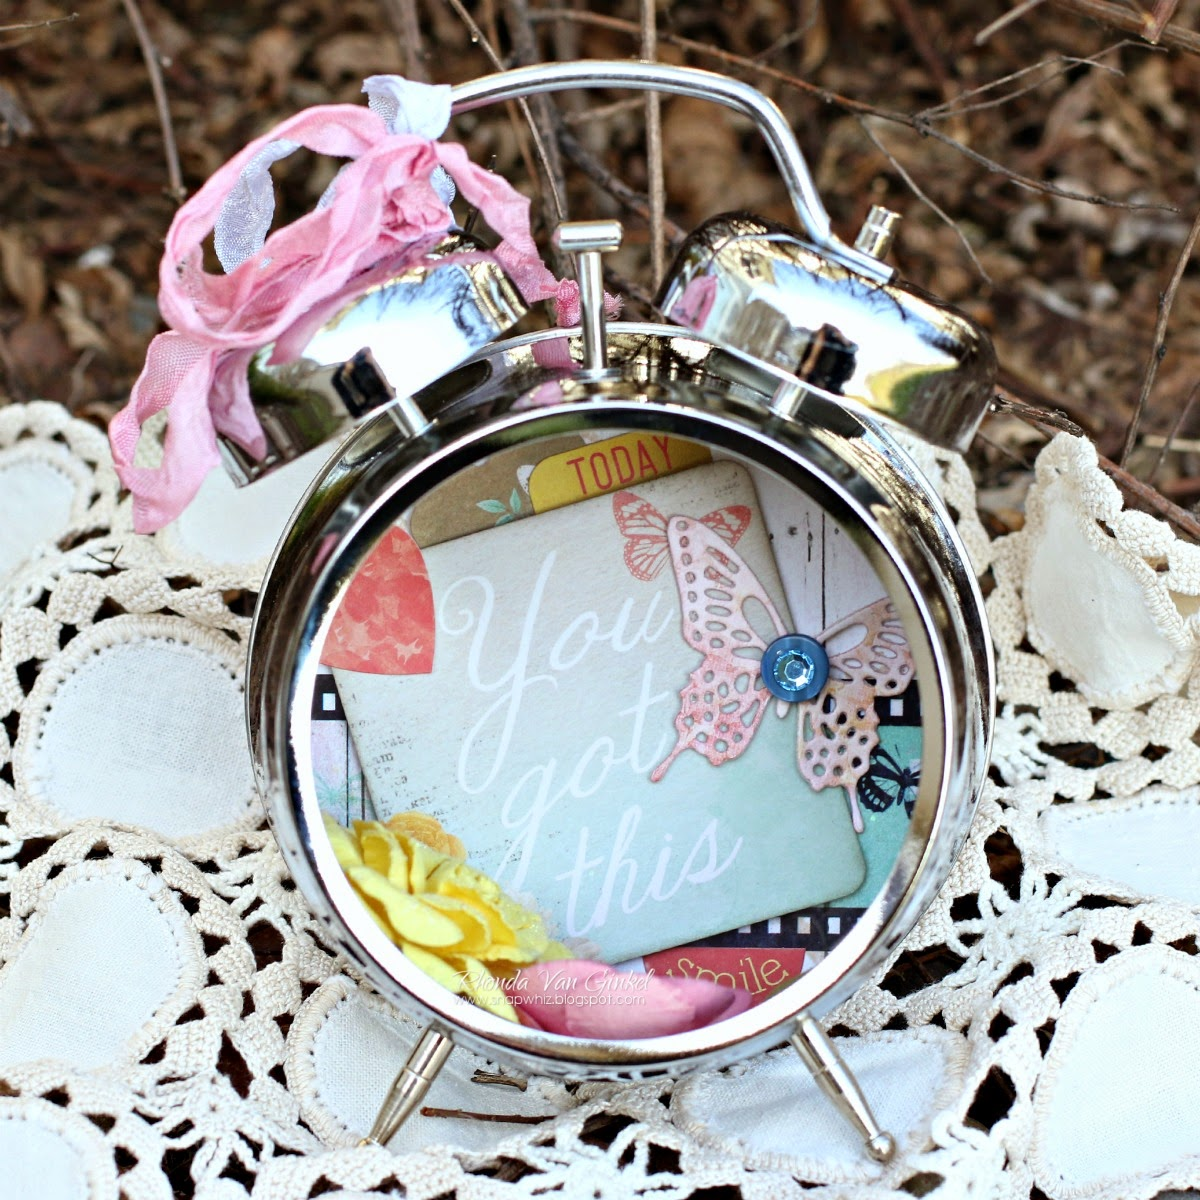 Altered Clock featuring Sweet Life collection by BoBunny and Scrapbook Adhesives by 3L designed by Rhonda Van Ginkel